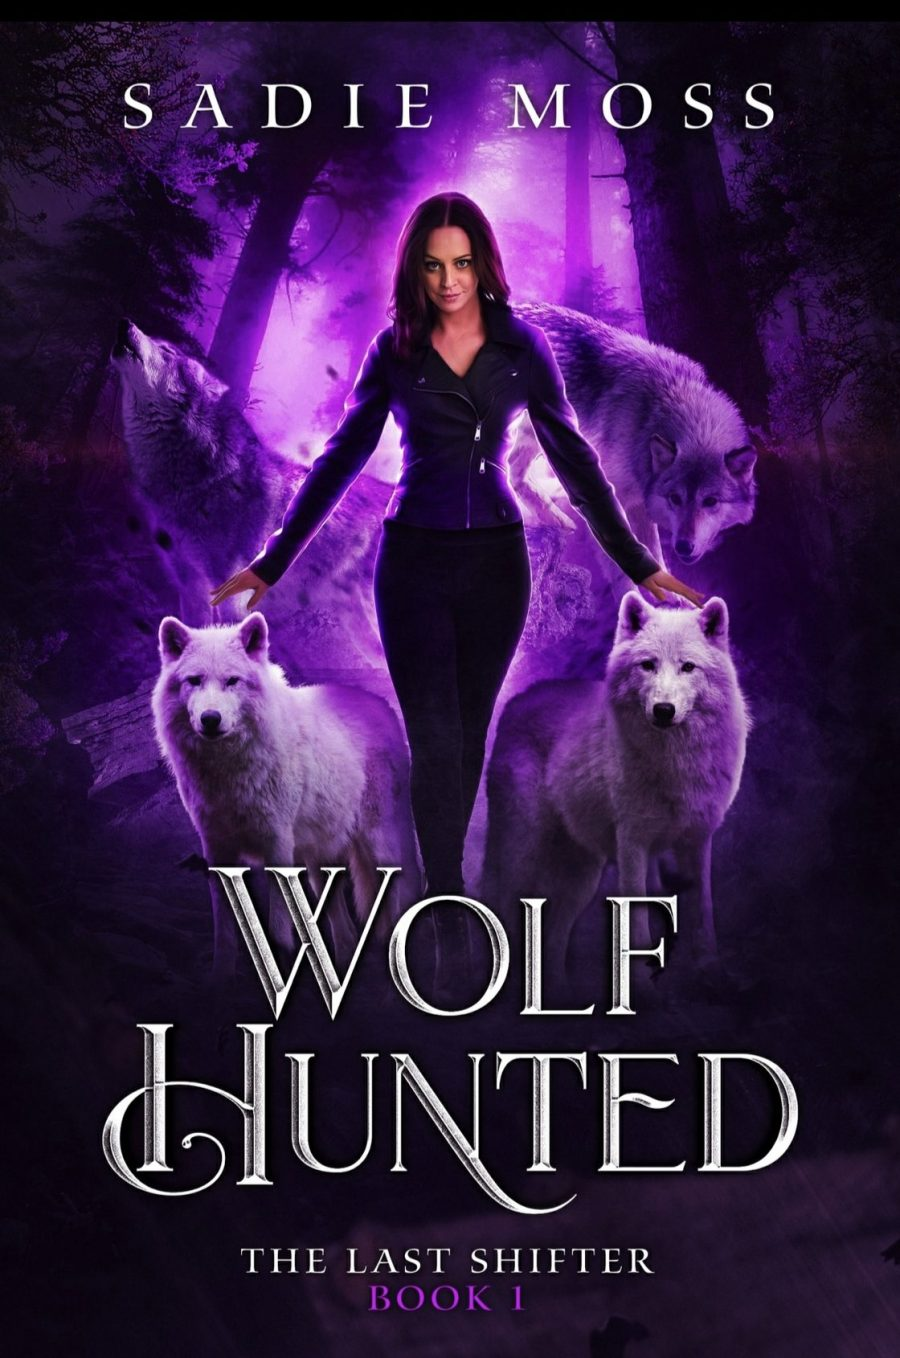 Wolf Hunted by Sadie Moss – A Book Review